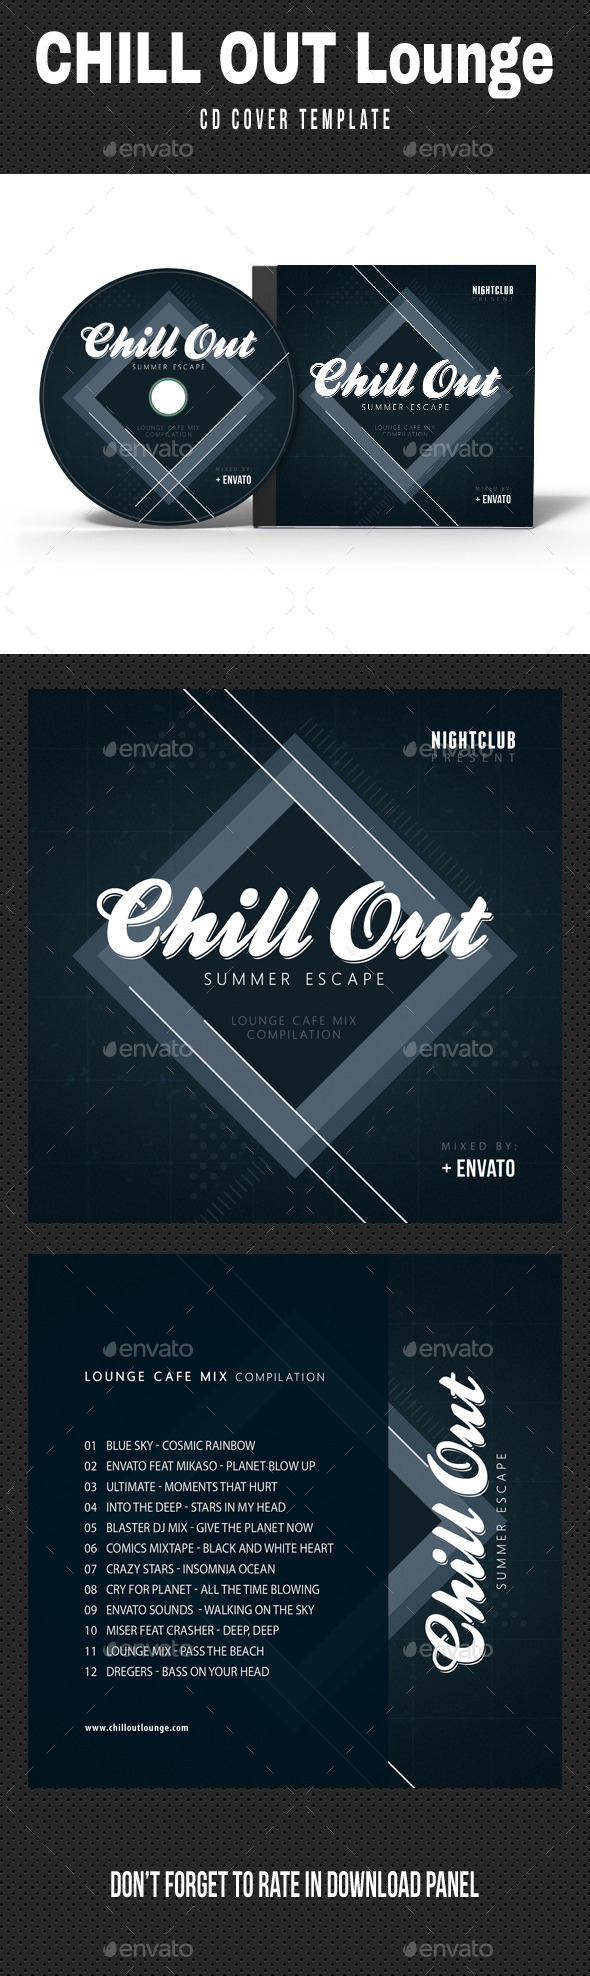 Chill Out Lounge CD Cover - CD & DVD Artwork Print Templates